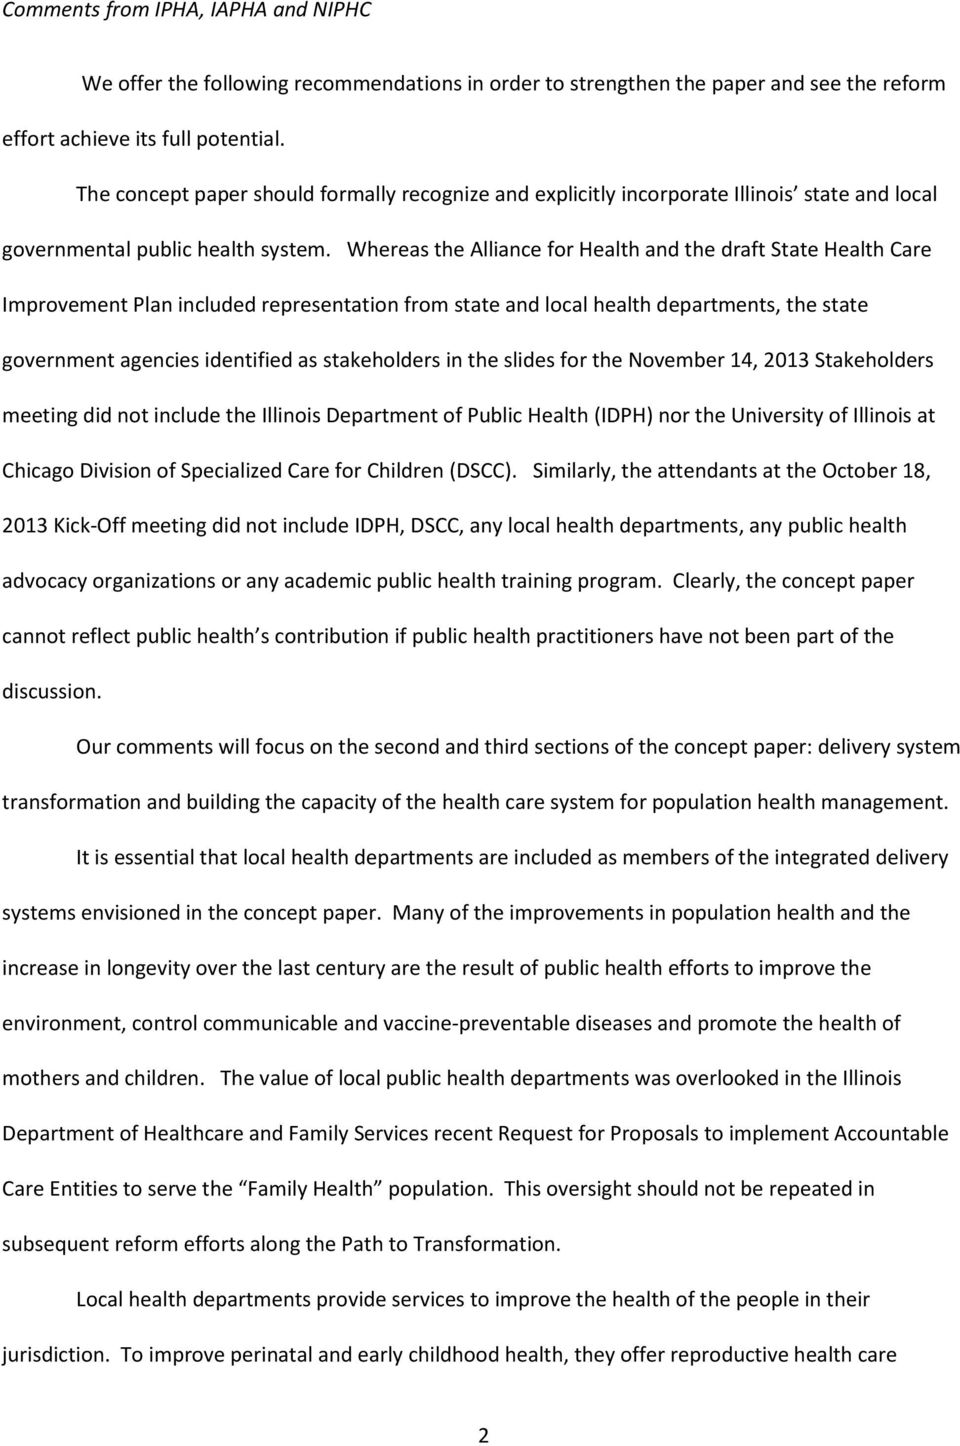 Whereas the Alliance for Health and the draft State Health Care Improvement Plan included representation from state and local health departments, the state government agencies identified as